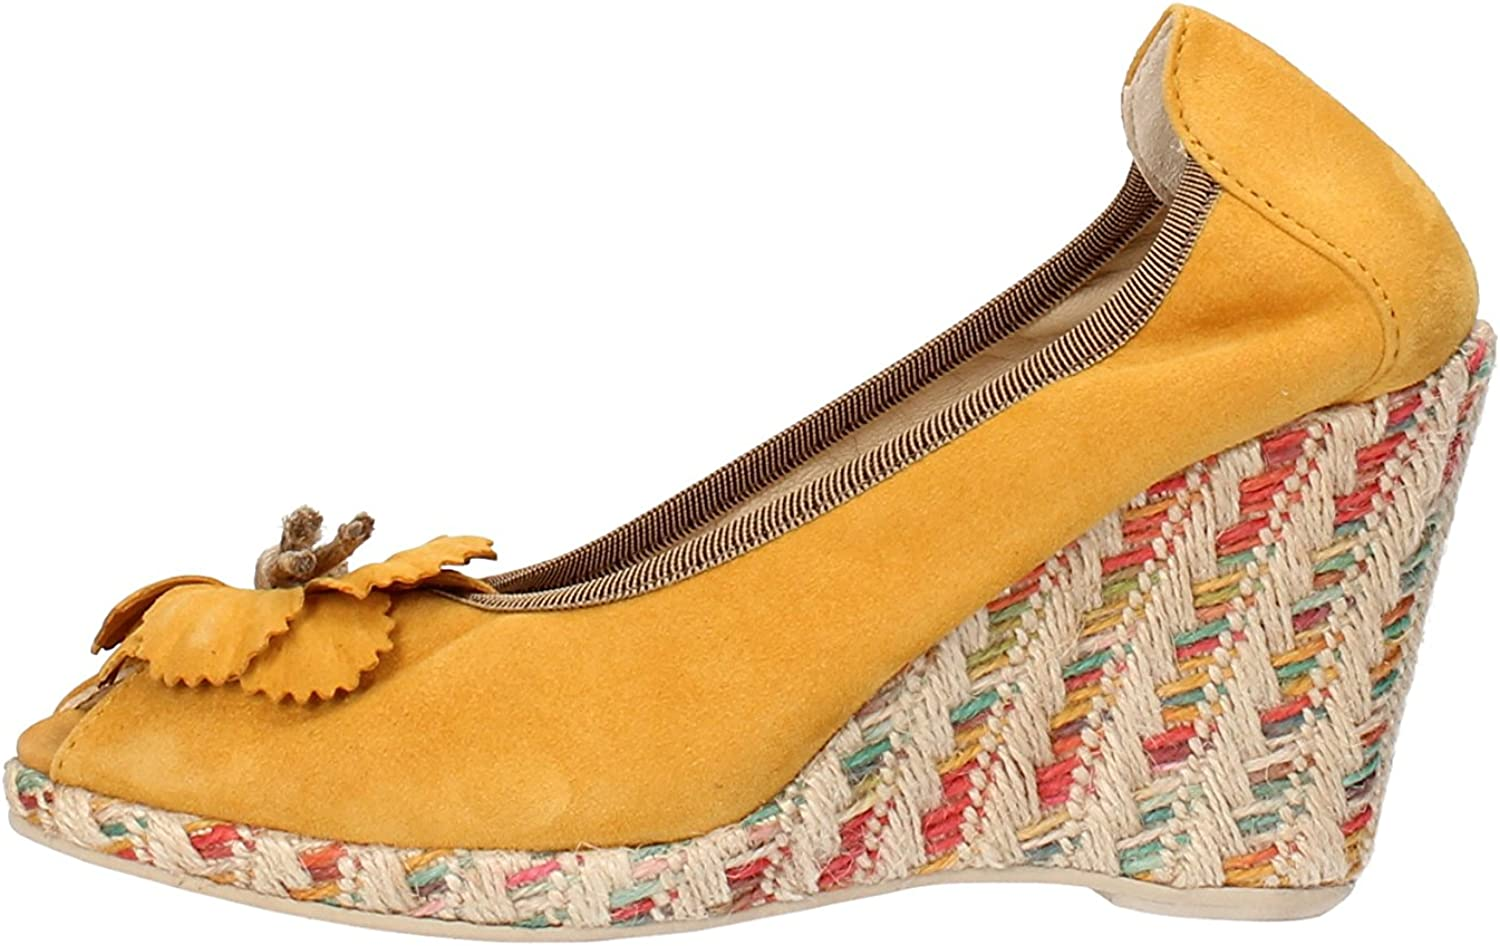 CALPIERRE Wedges-Sandals Womens Suede Yellow